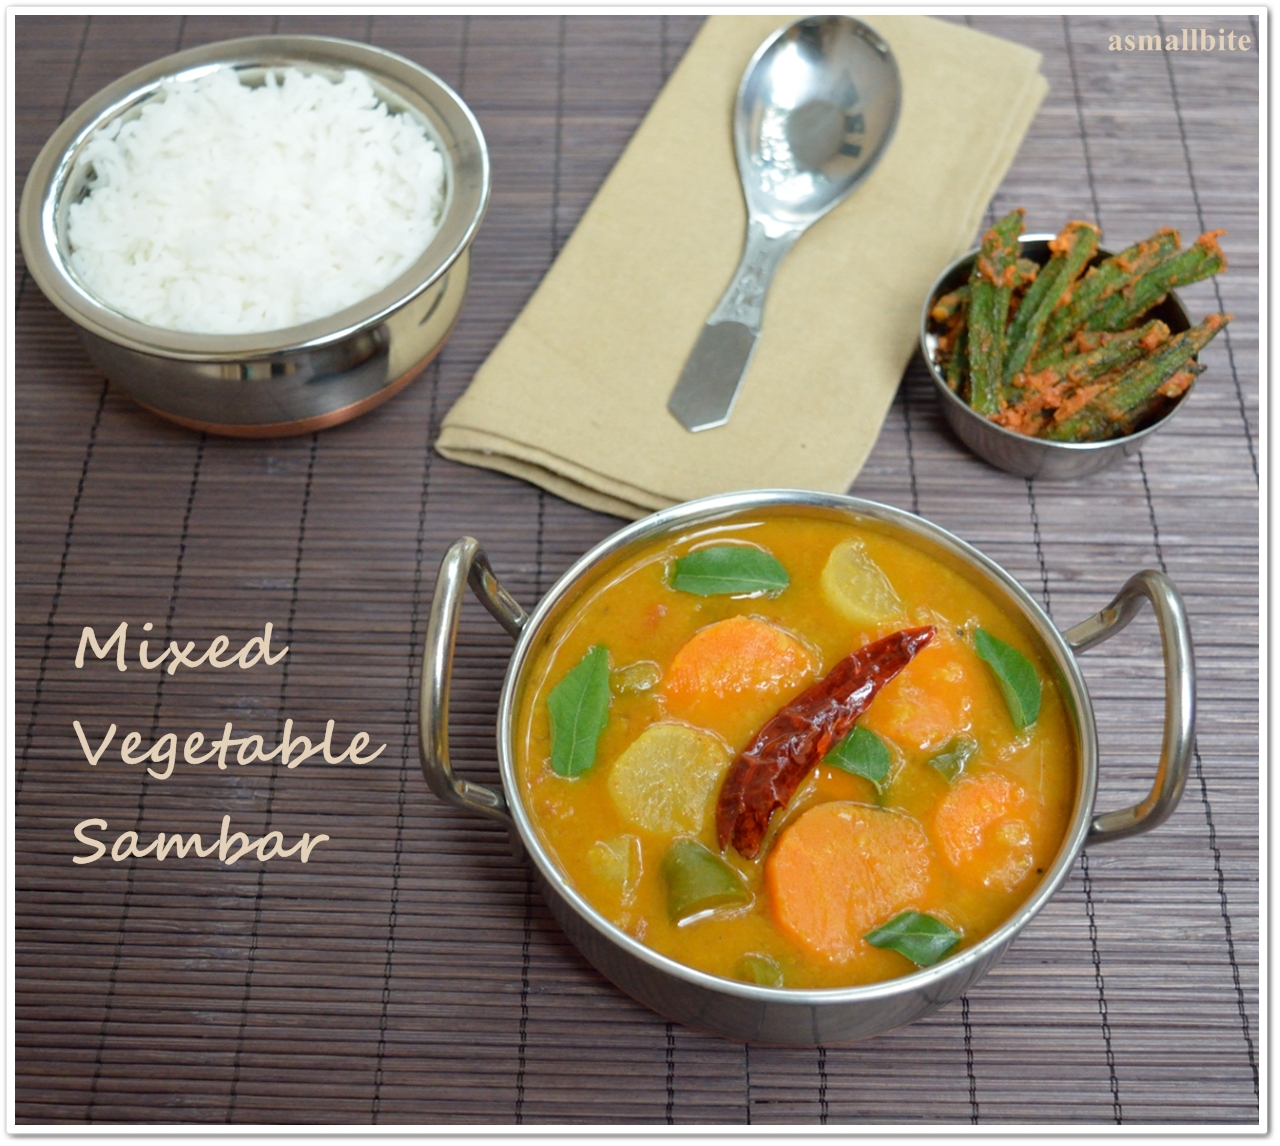 Mixed Vegetable Sambar 2